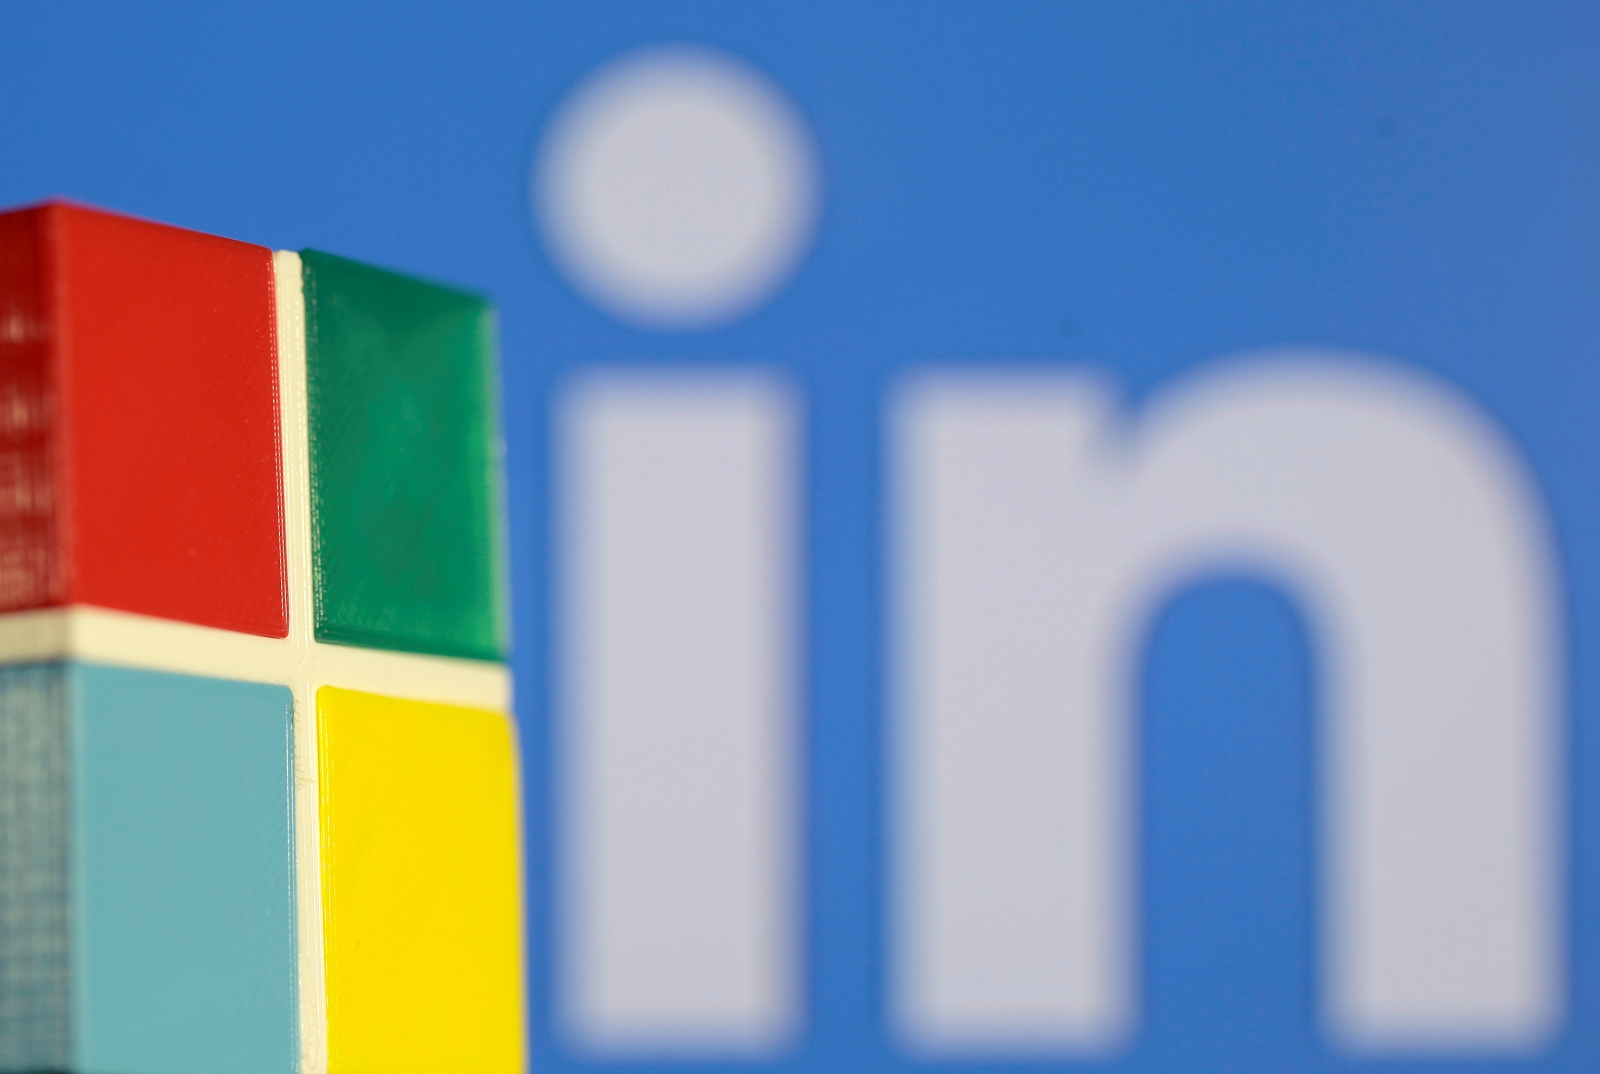 Microsoft offers concession to EU for LinkedIn